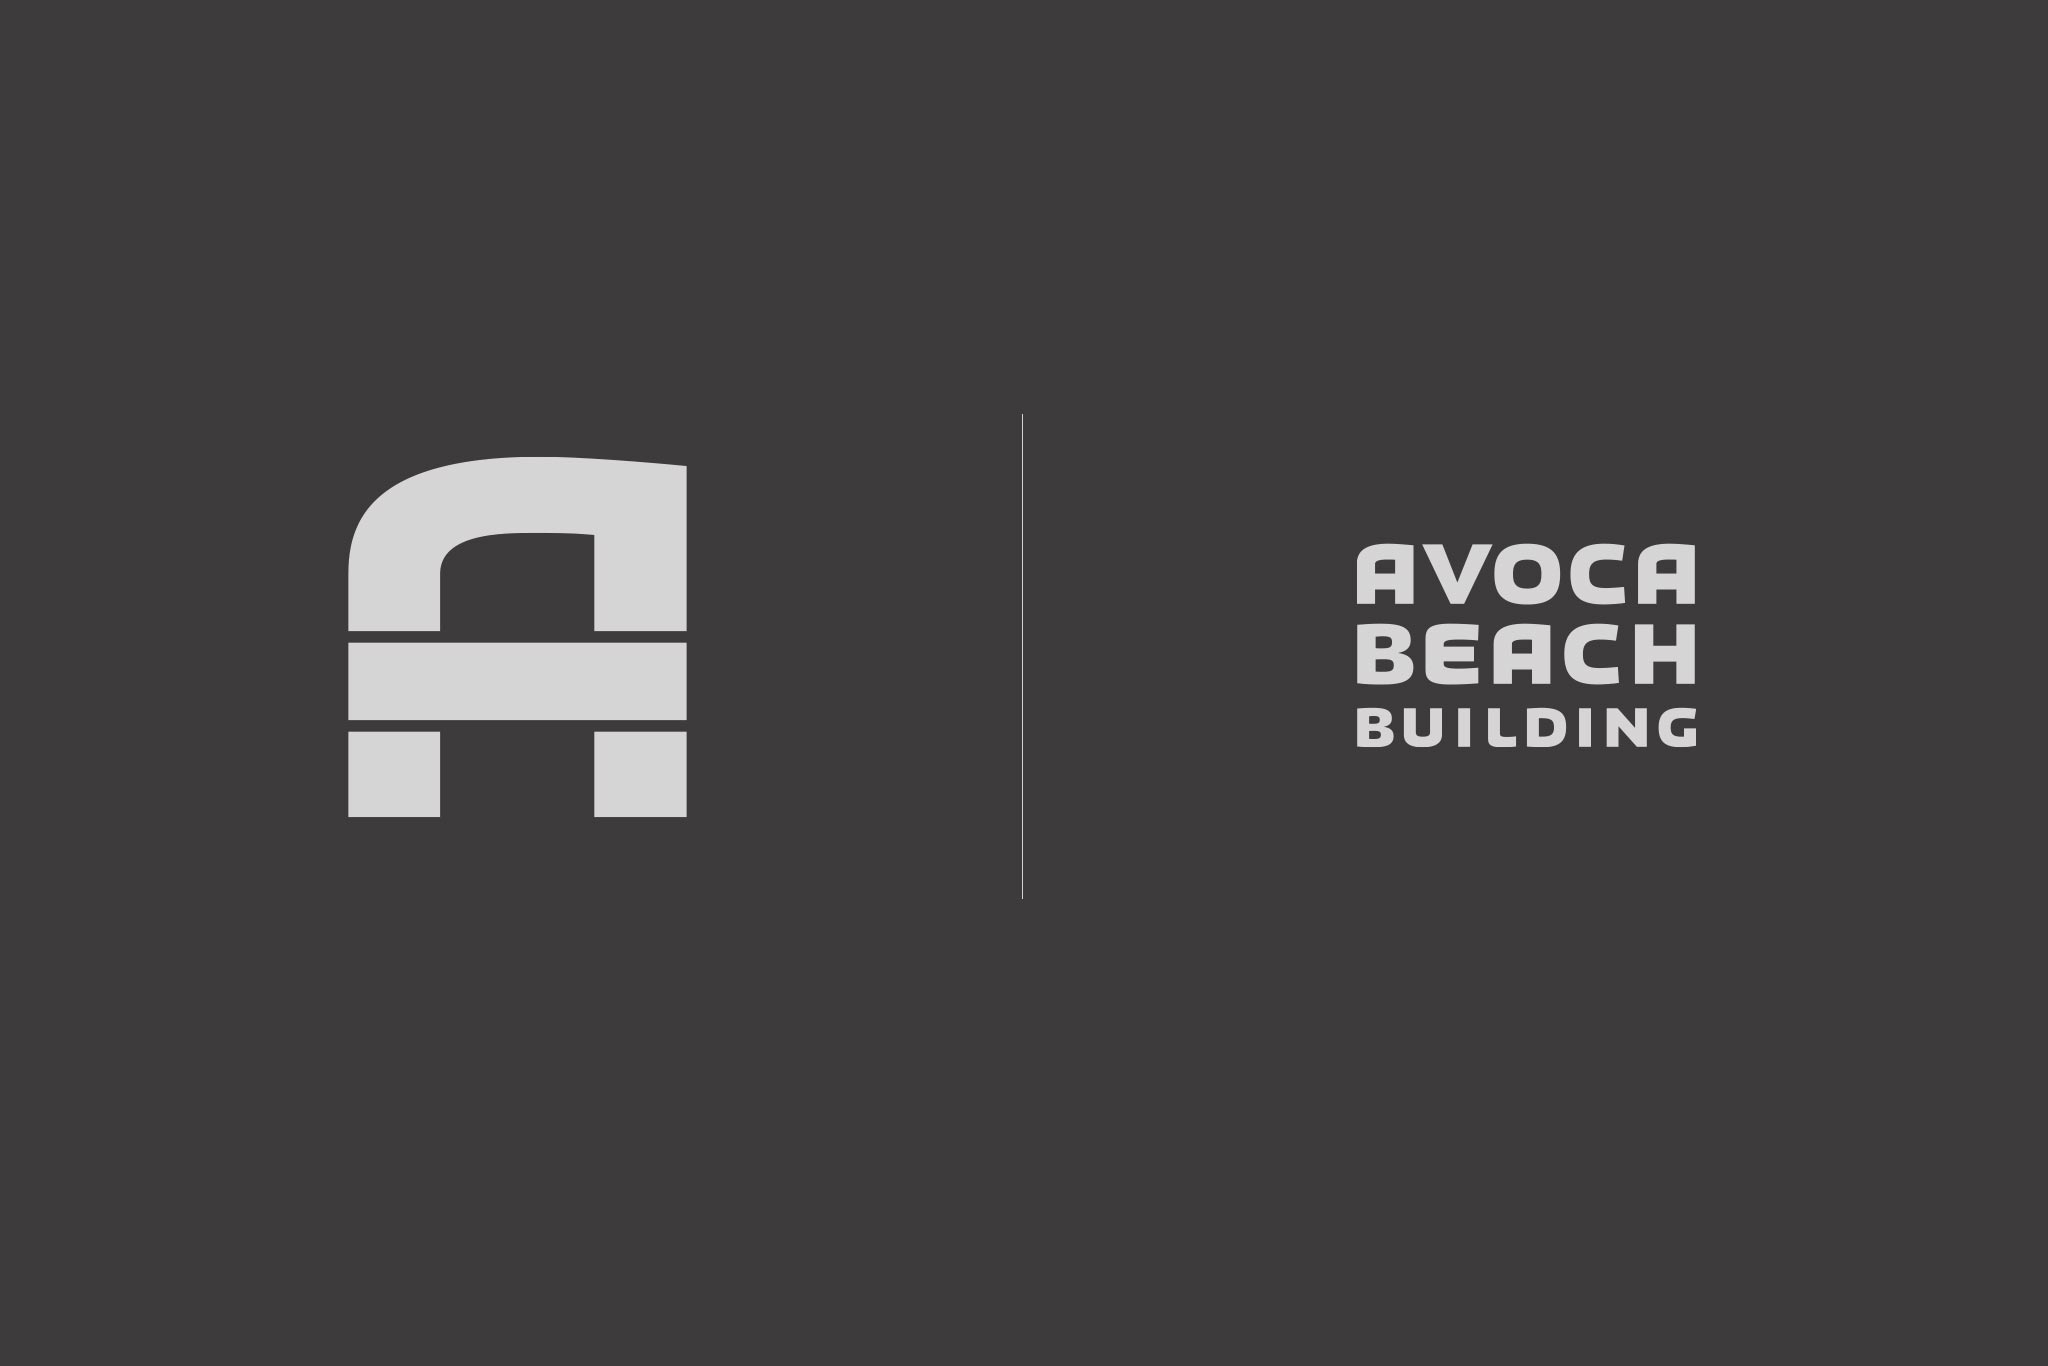 avoca-beach-builiding-branding_2